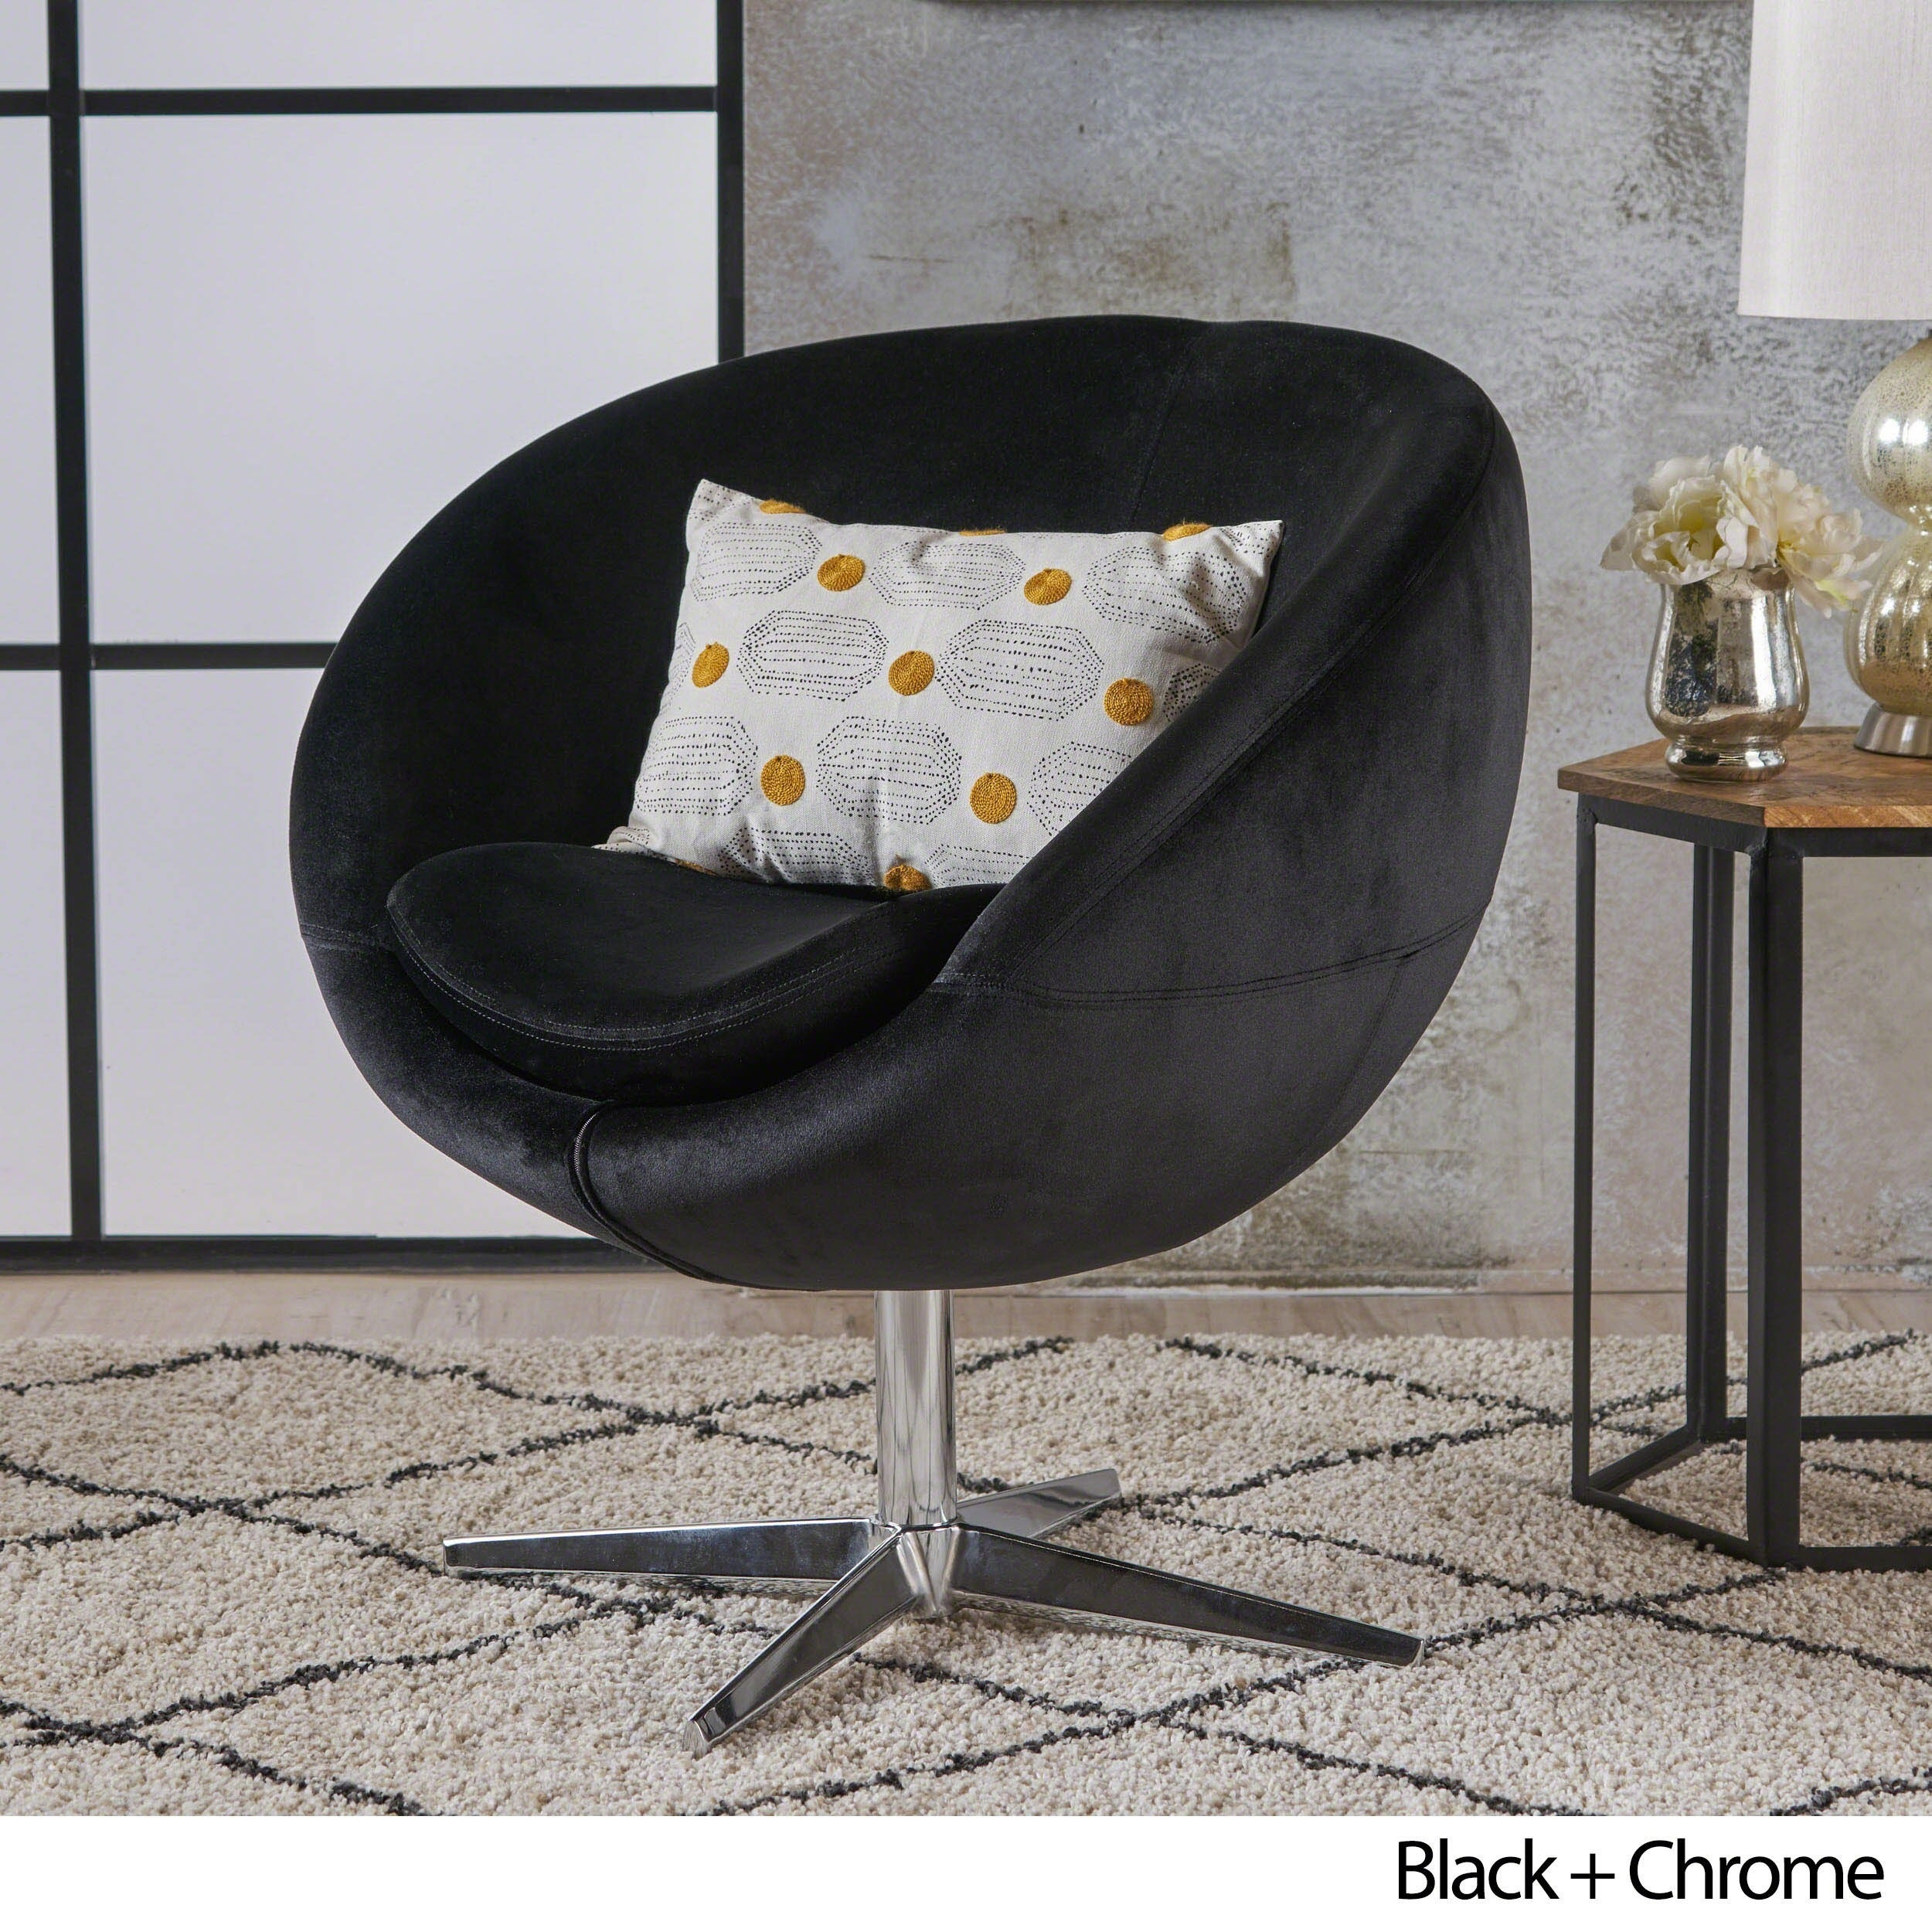 Isla Velvet Fabric Roundback Modern Chair By Christopher Knight Home   Free  Shipping Today   Overstock.com   20024005